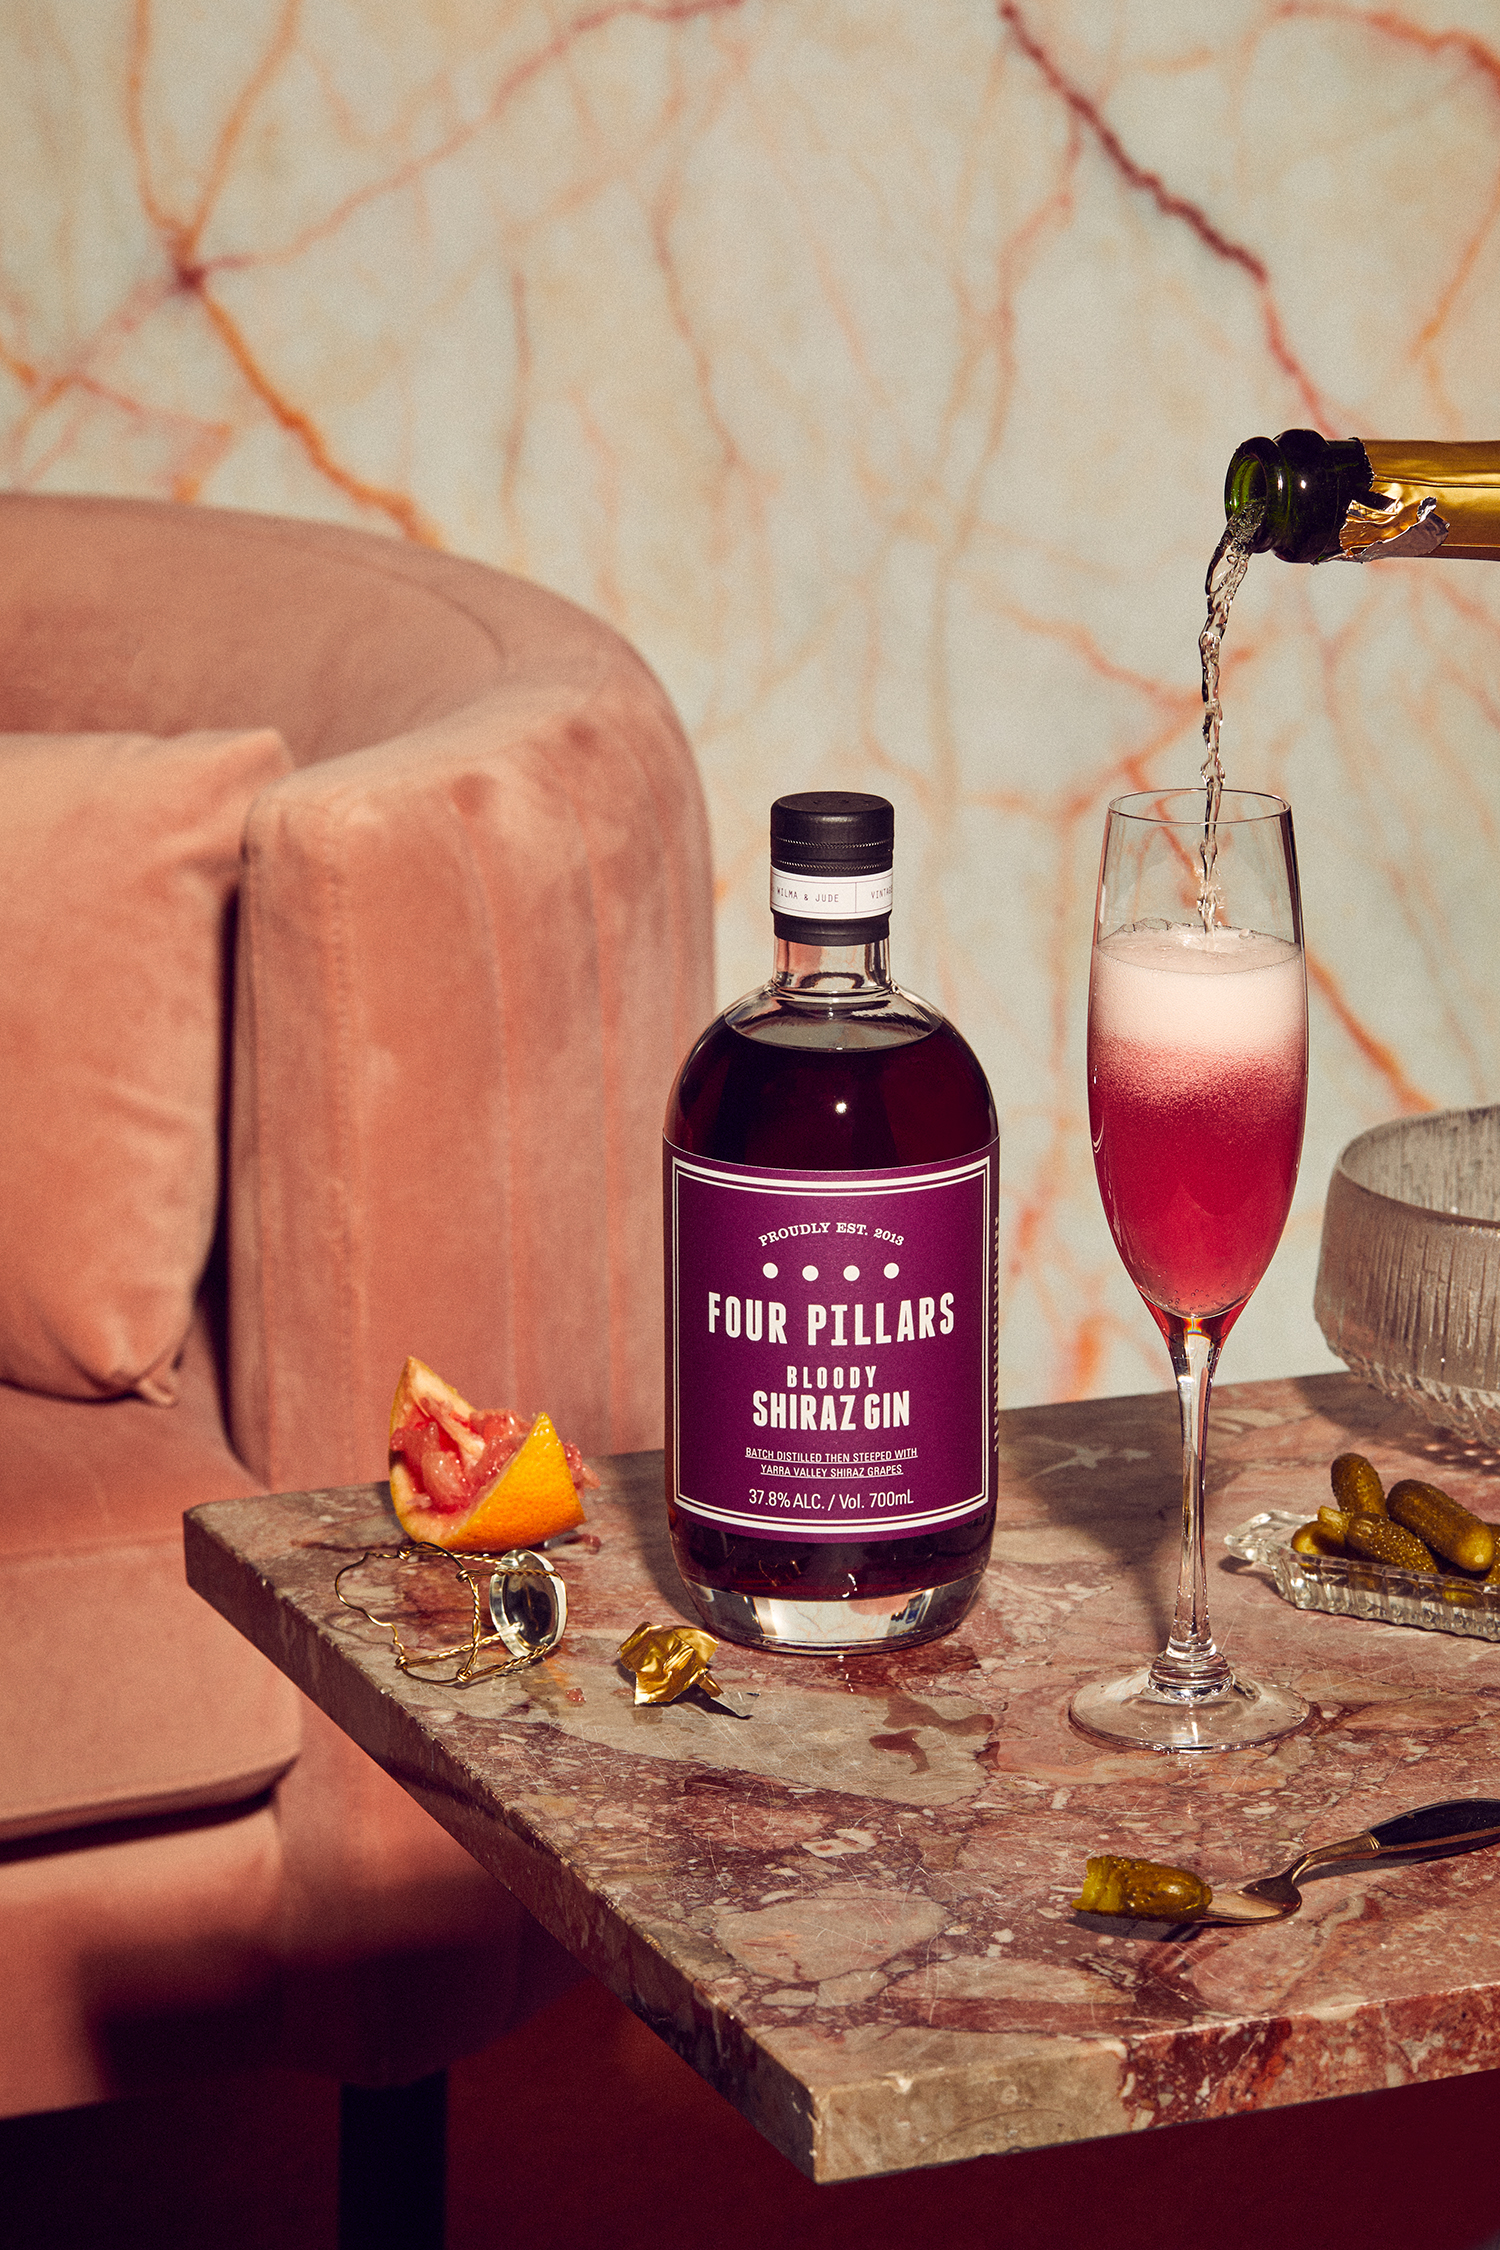 Four Pillars Bloody Shiraz Gin shot by Sydney advertising food and lifestyle photographer Benito Martin